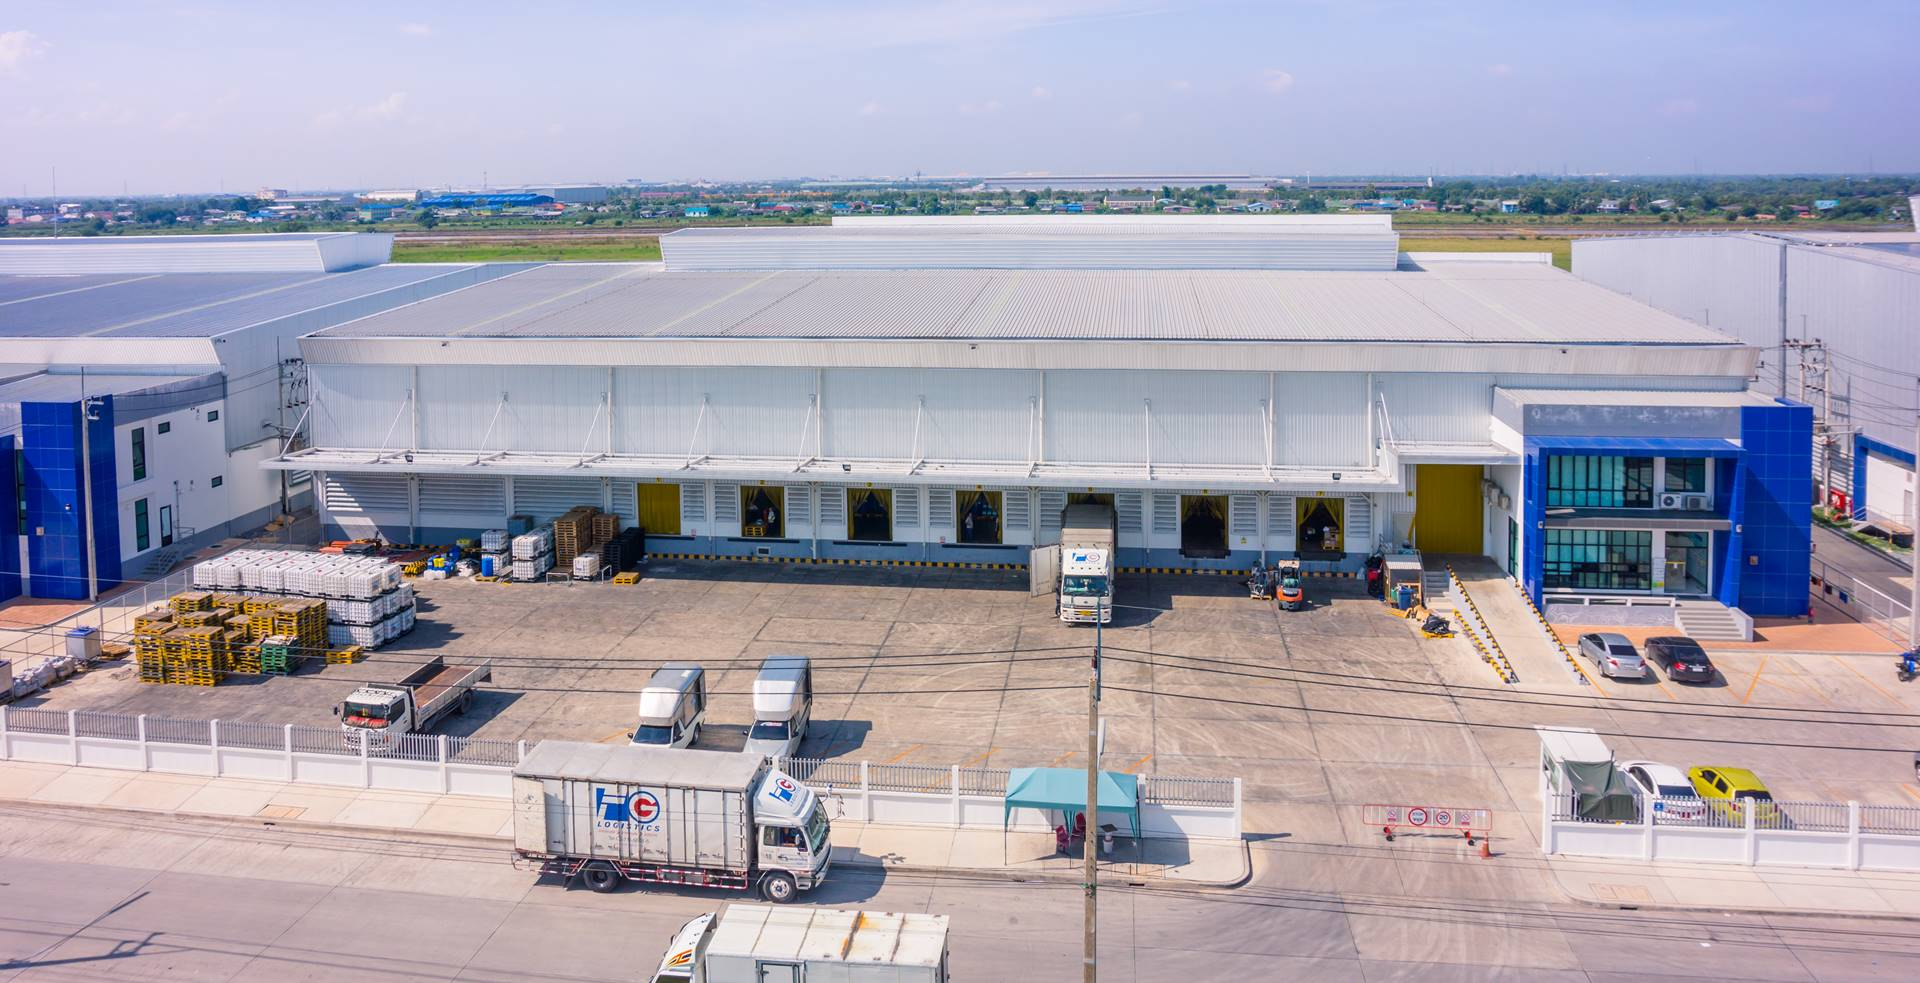 ศูนย์กระจายสินค้า WHA Mega Logistics Center วังน้อย 61 <small>(LF Logistics D.C. for Jonhnson Diversey Harzadous Goods) </small>